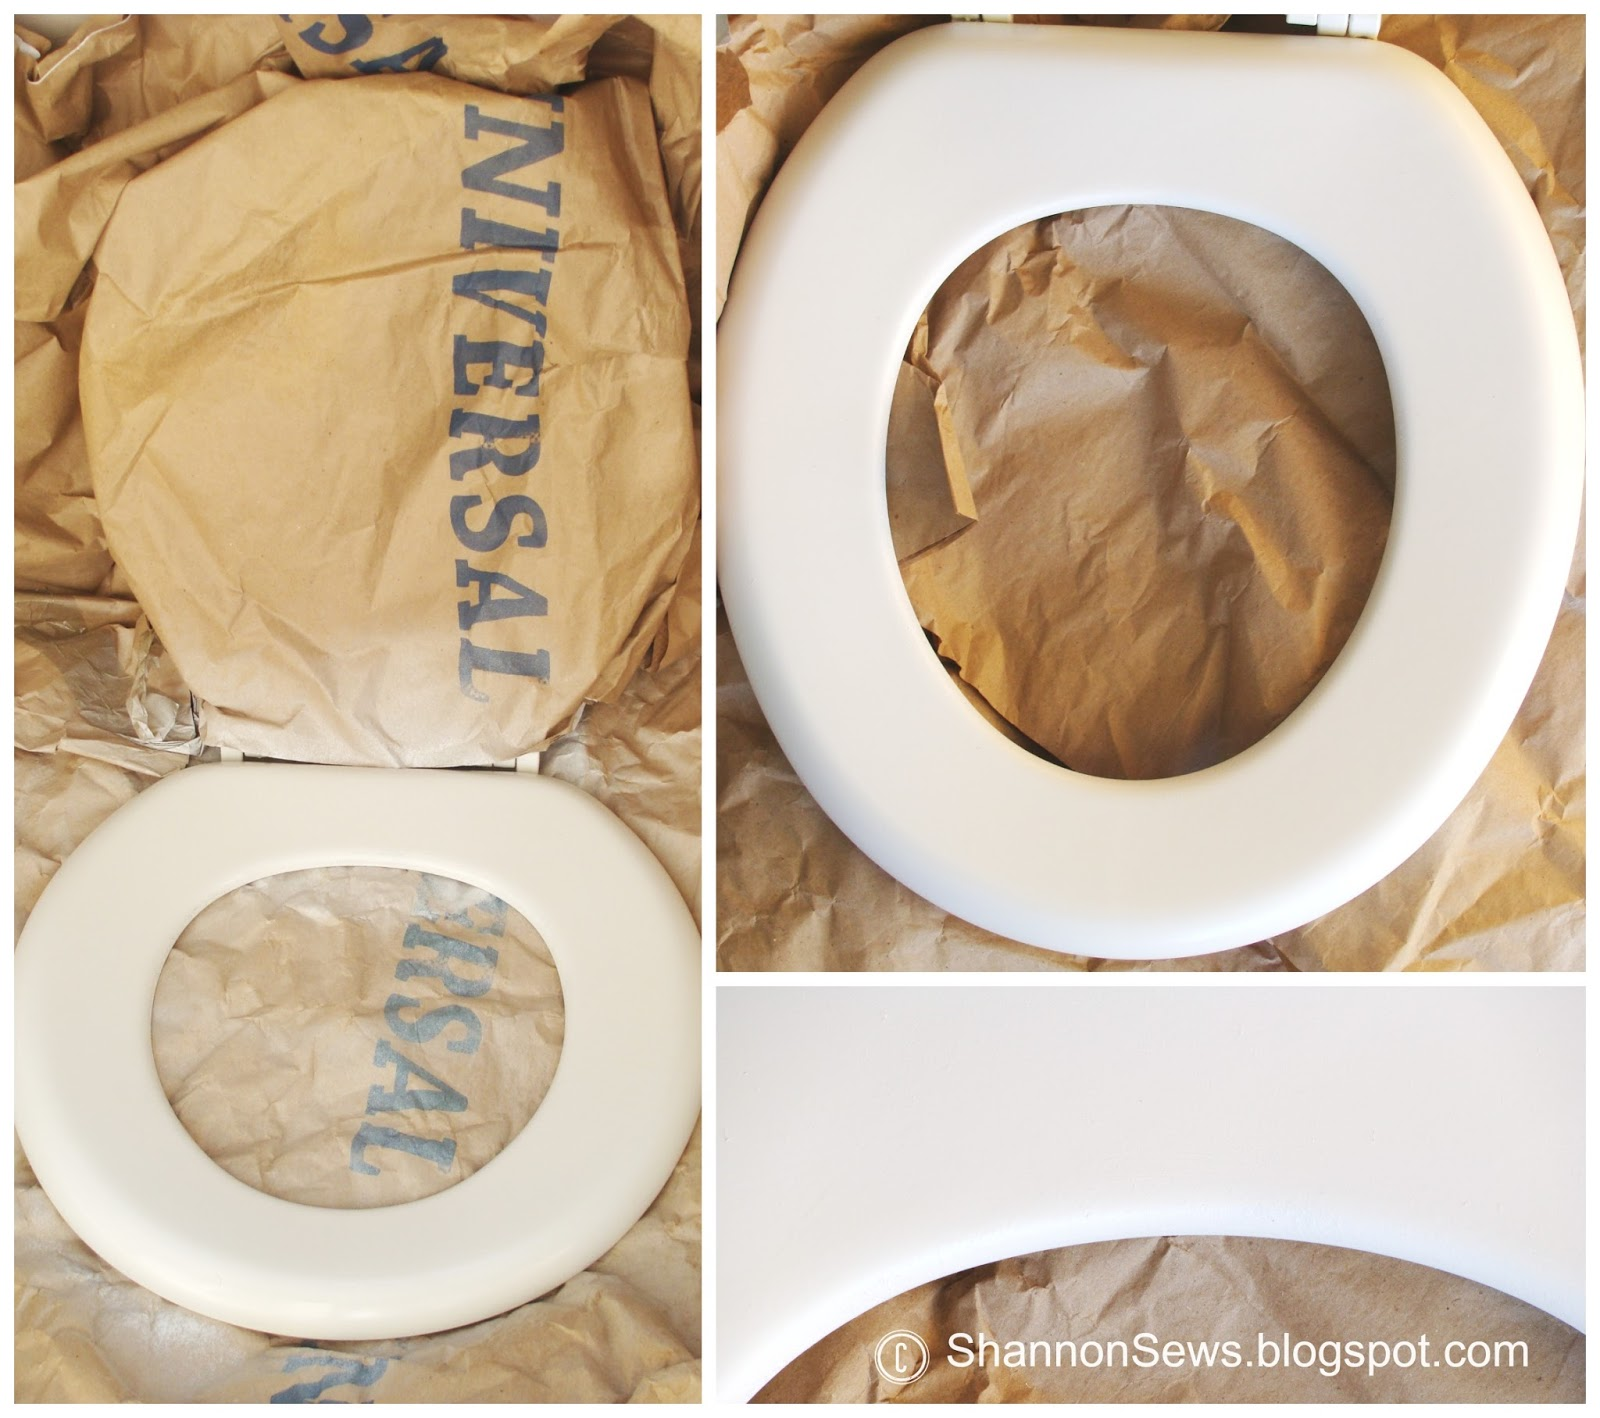 gold glitter toilet seat. do it yourself fix toilet seat spray paint look new again Sewing  Tutorials Crafts DIY Handmade Shannon Sews blog for